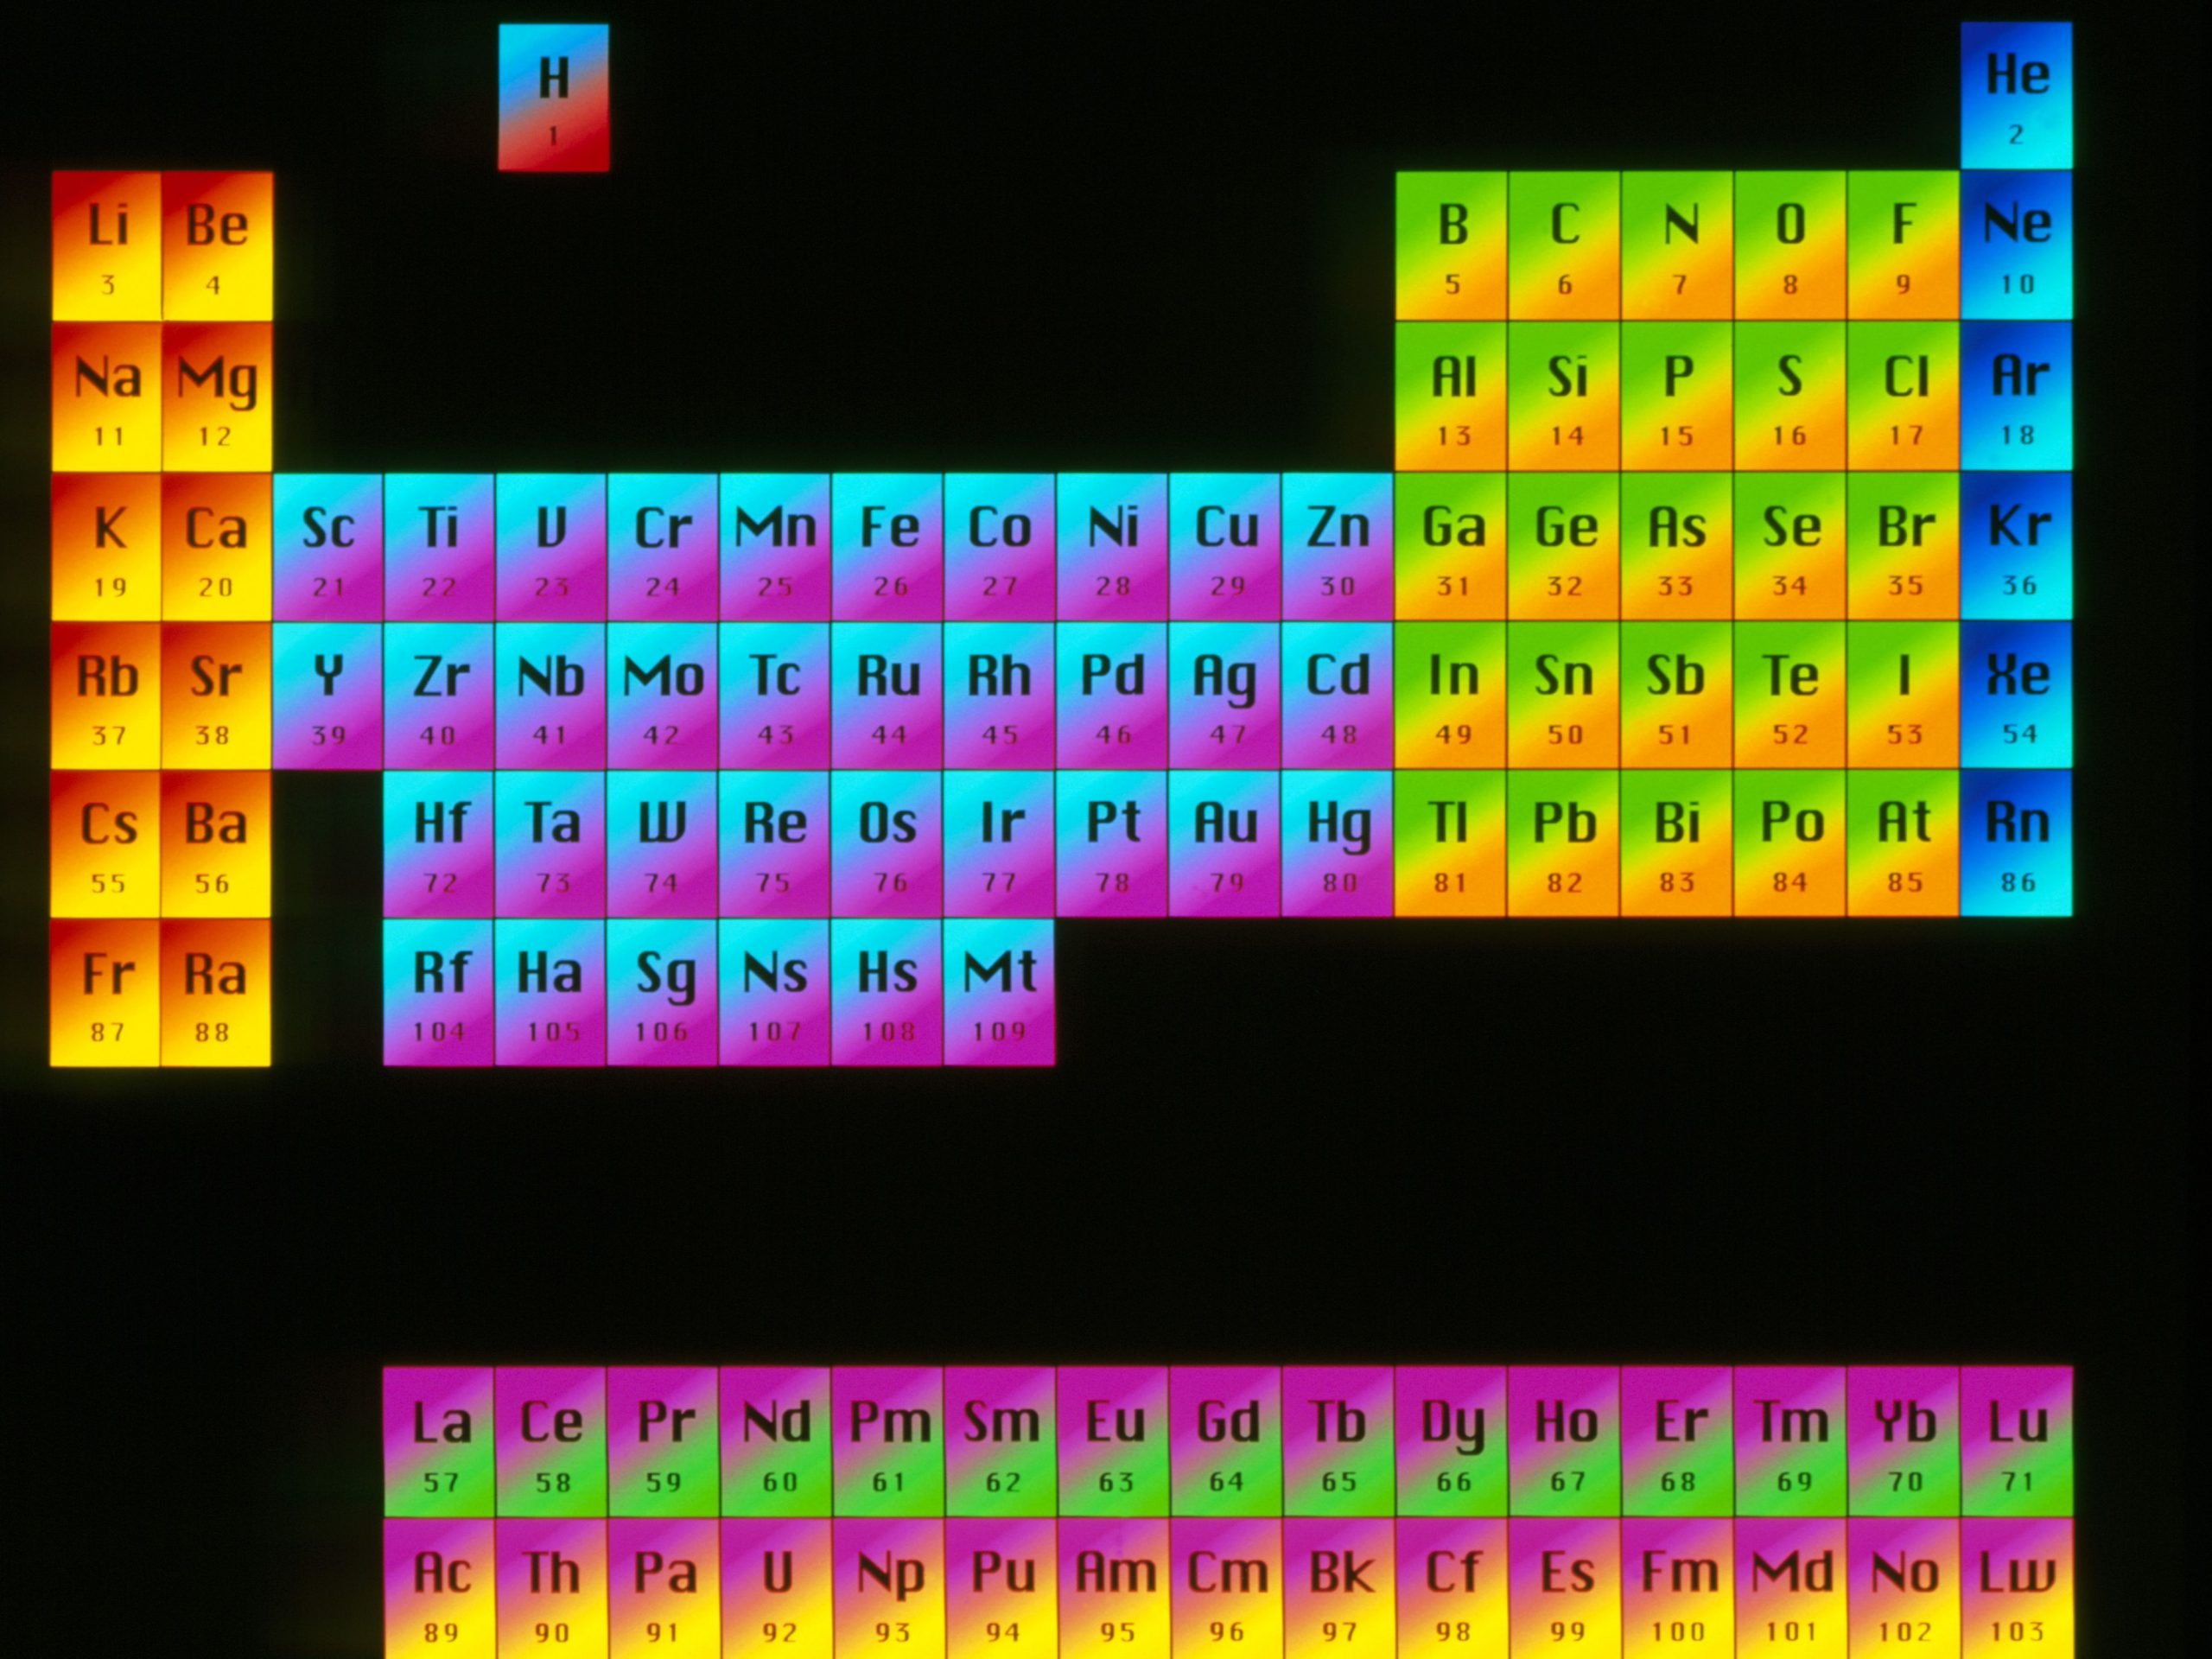 periodic table of elements 58ea3e903df78c5162f92b6f